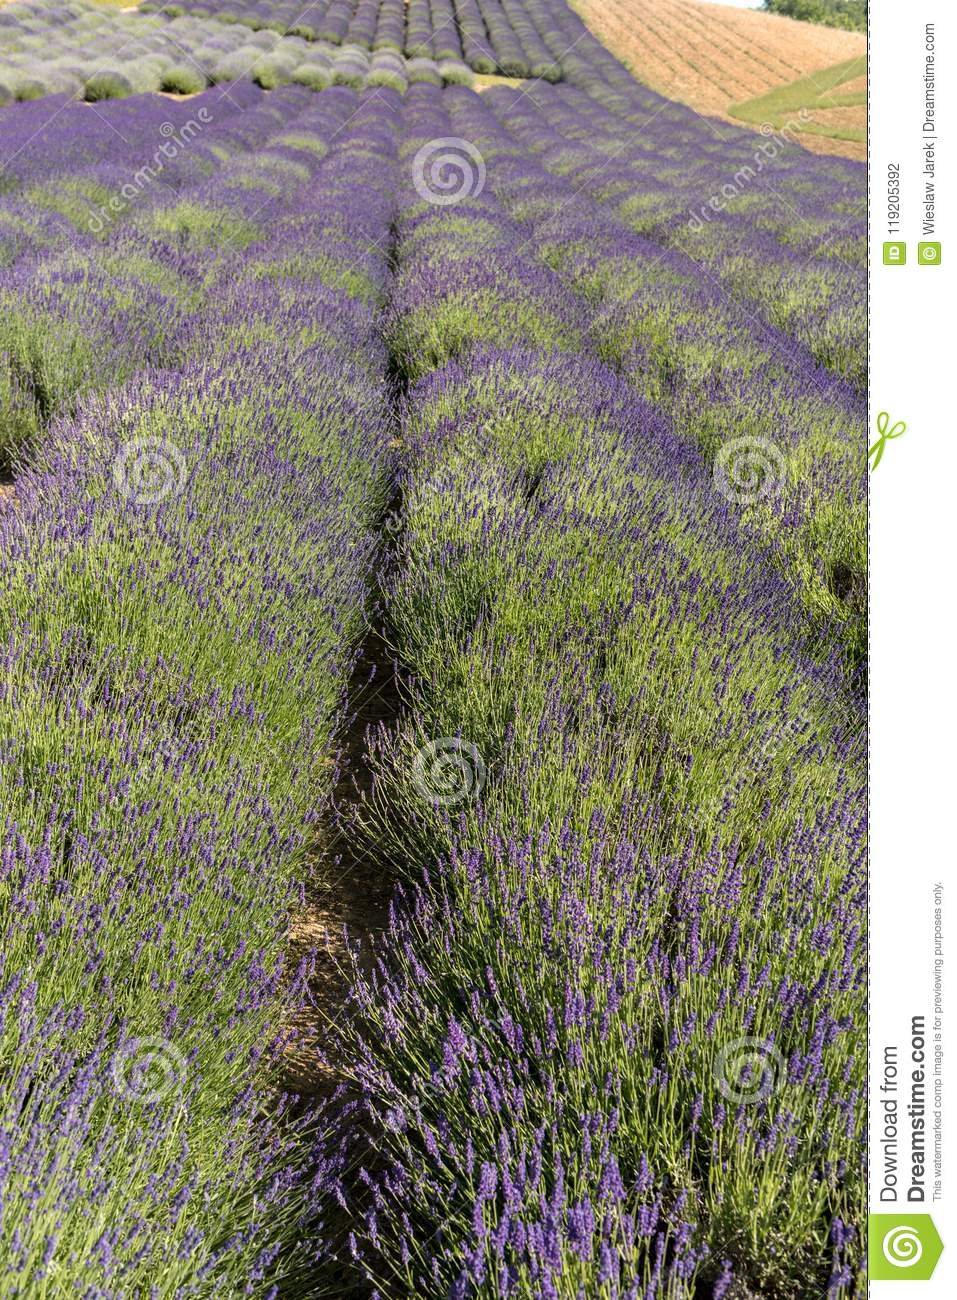 Garden full of lavender in Ostrów 40 km from Krakow. The smell and color of lavender allows visitors to feel like in Provence.